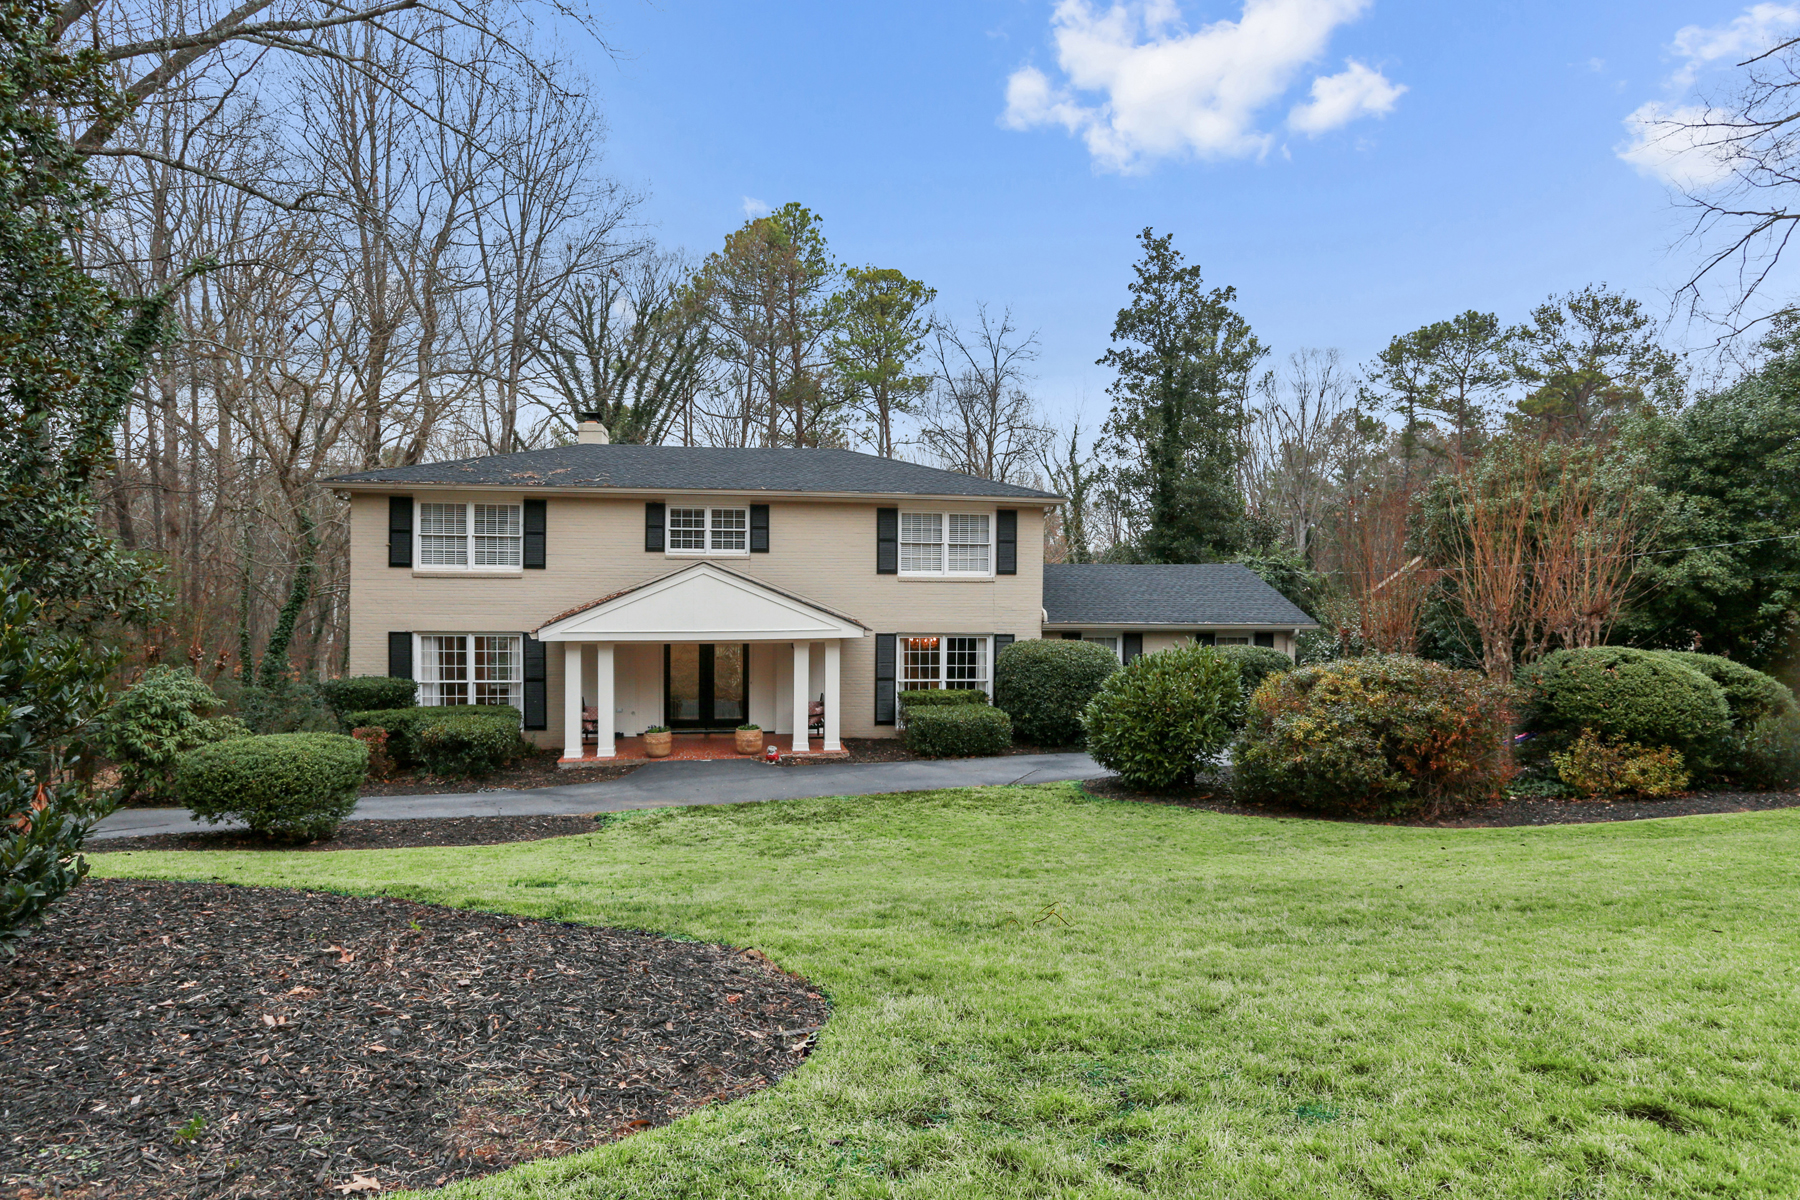 Single Family Home for Sale at Traditional Brick Home In Morris Brandon School District 2824 Ridge Valley Rd Atlanta, Georgia, 30327 United States